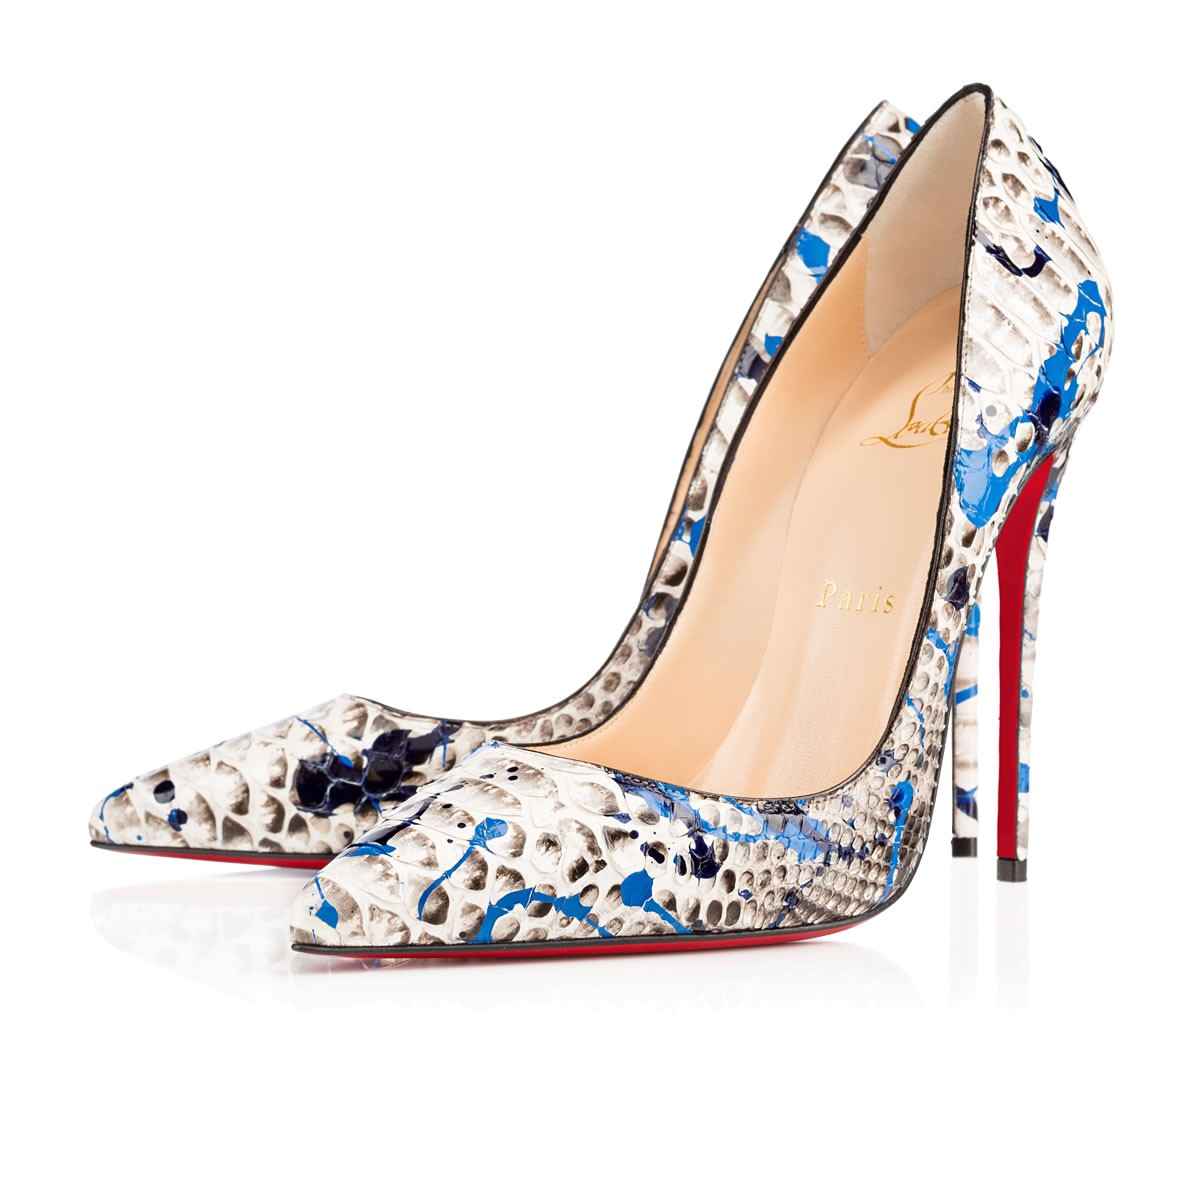 d5892083ef83 CHRISTIAN LOUBOUTIN DÉCOLLETÉ 100 PAINTED PYTHON PUMPS